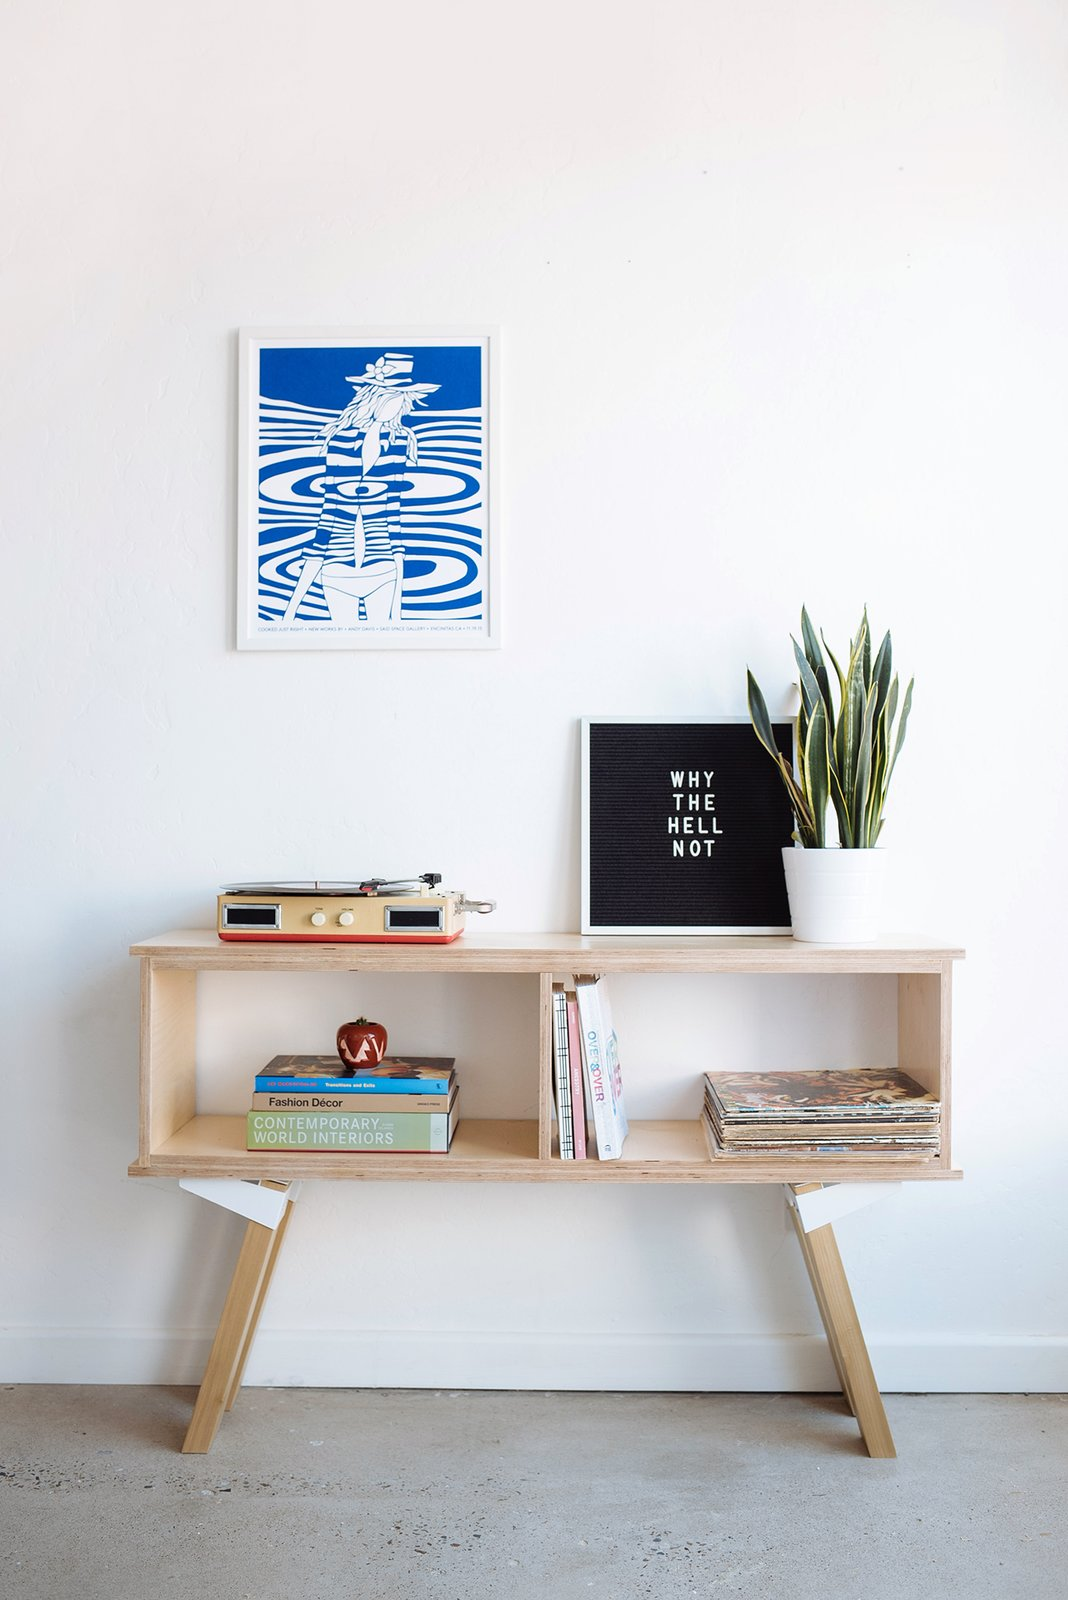 Any combination of dining tables, desks, coffee tables, credenzas, standing desks, and more, are possible. And of course, the wood can be easily painted for a more colorful design.  Shape-Shifters: Modular Furniture by Heather Corcoran from This Kickstarter Campaign Aims to Turn Any 2x4 Into Awesome Modern Furniture